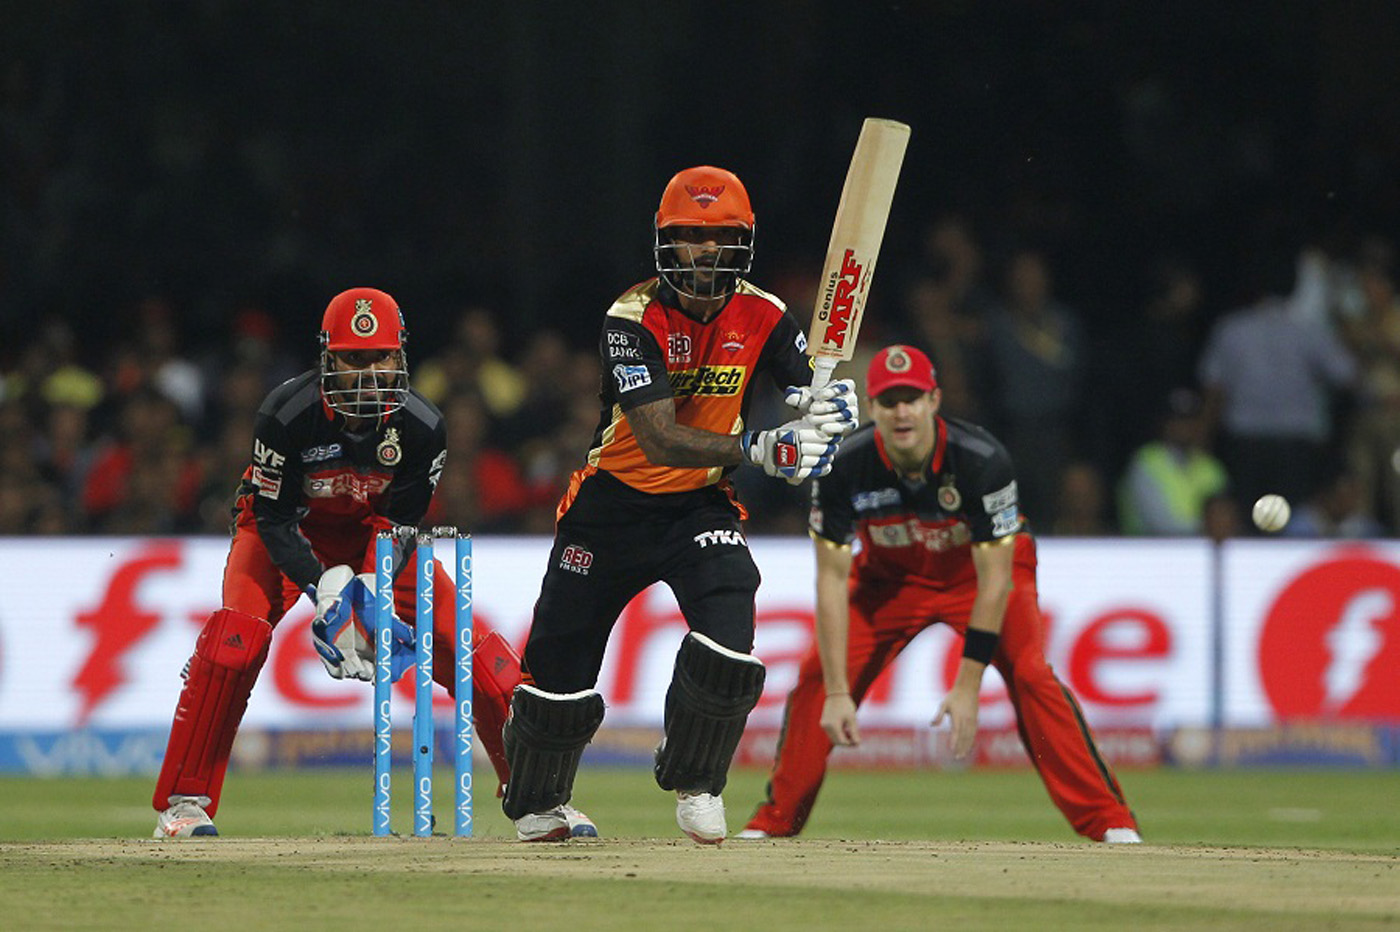 Shikhar Dhawan drives down the ground during the IPL 2016 final match between  Royal Challengers Bangalore and Sunrisers Hyderabad at  Bangalore on Sunday.